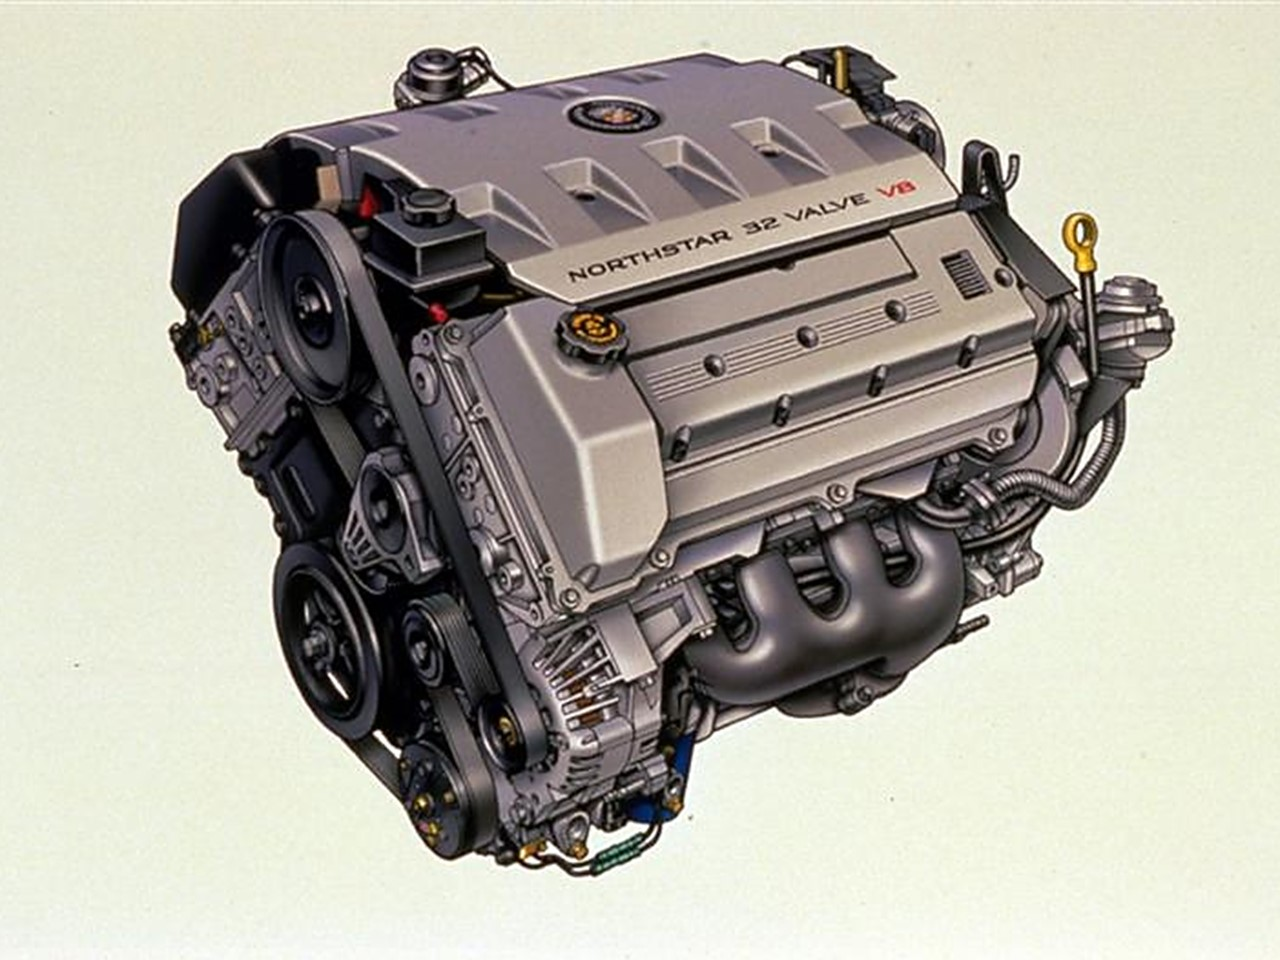 Northstar 32-valve V8 engine